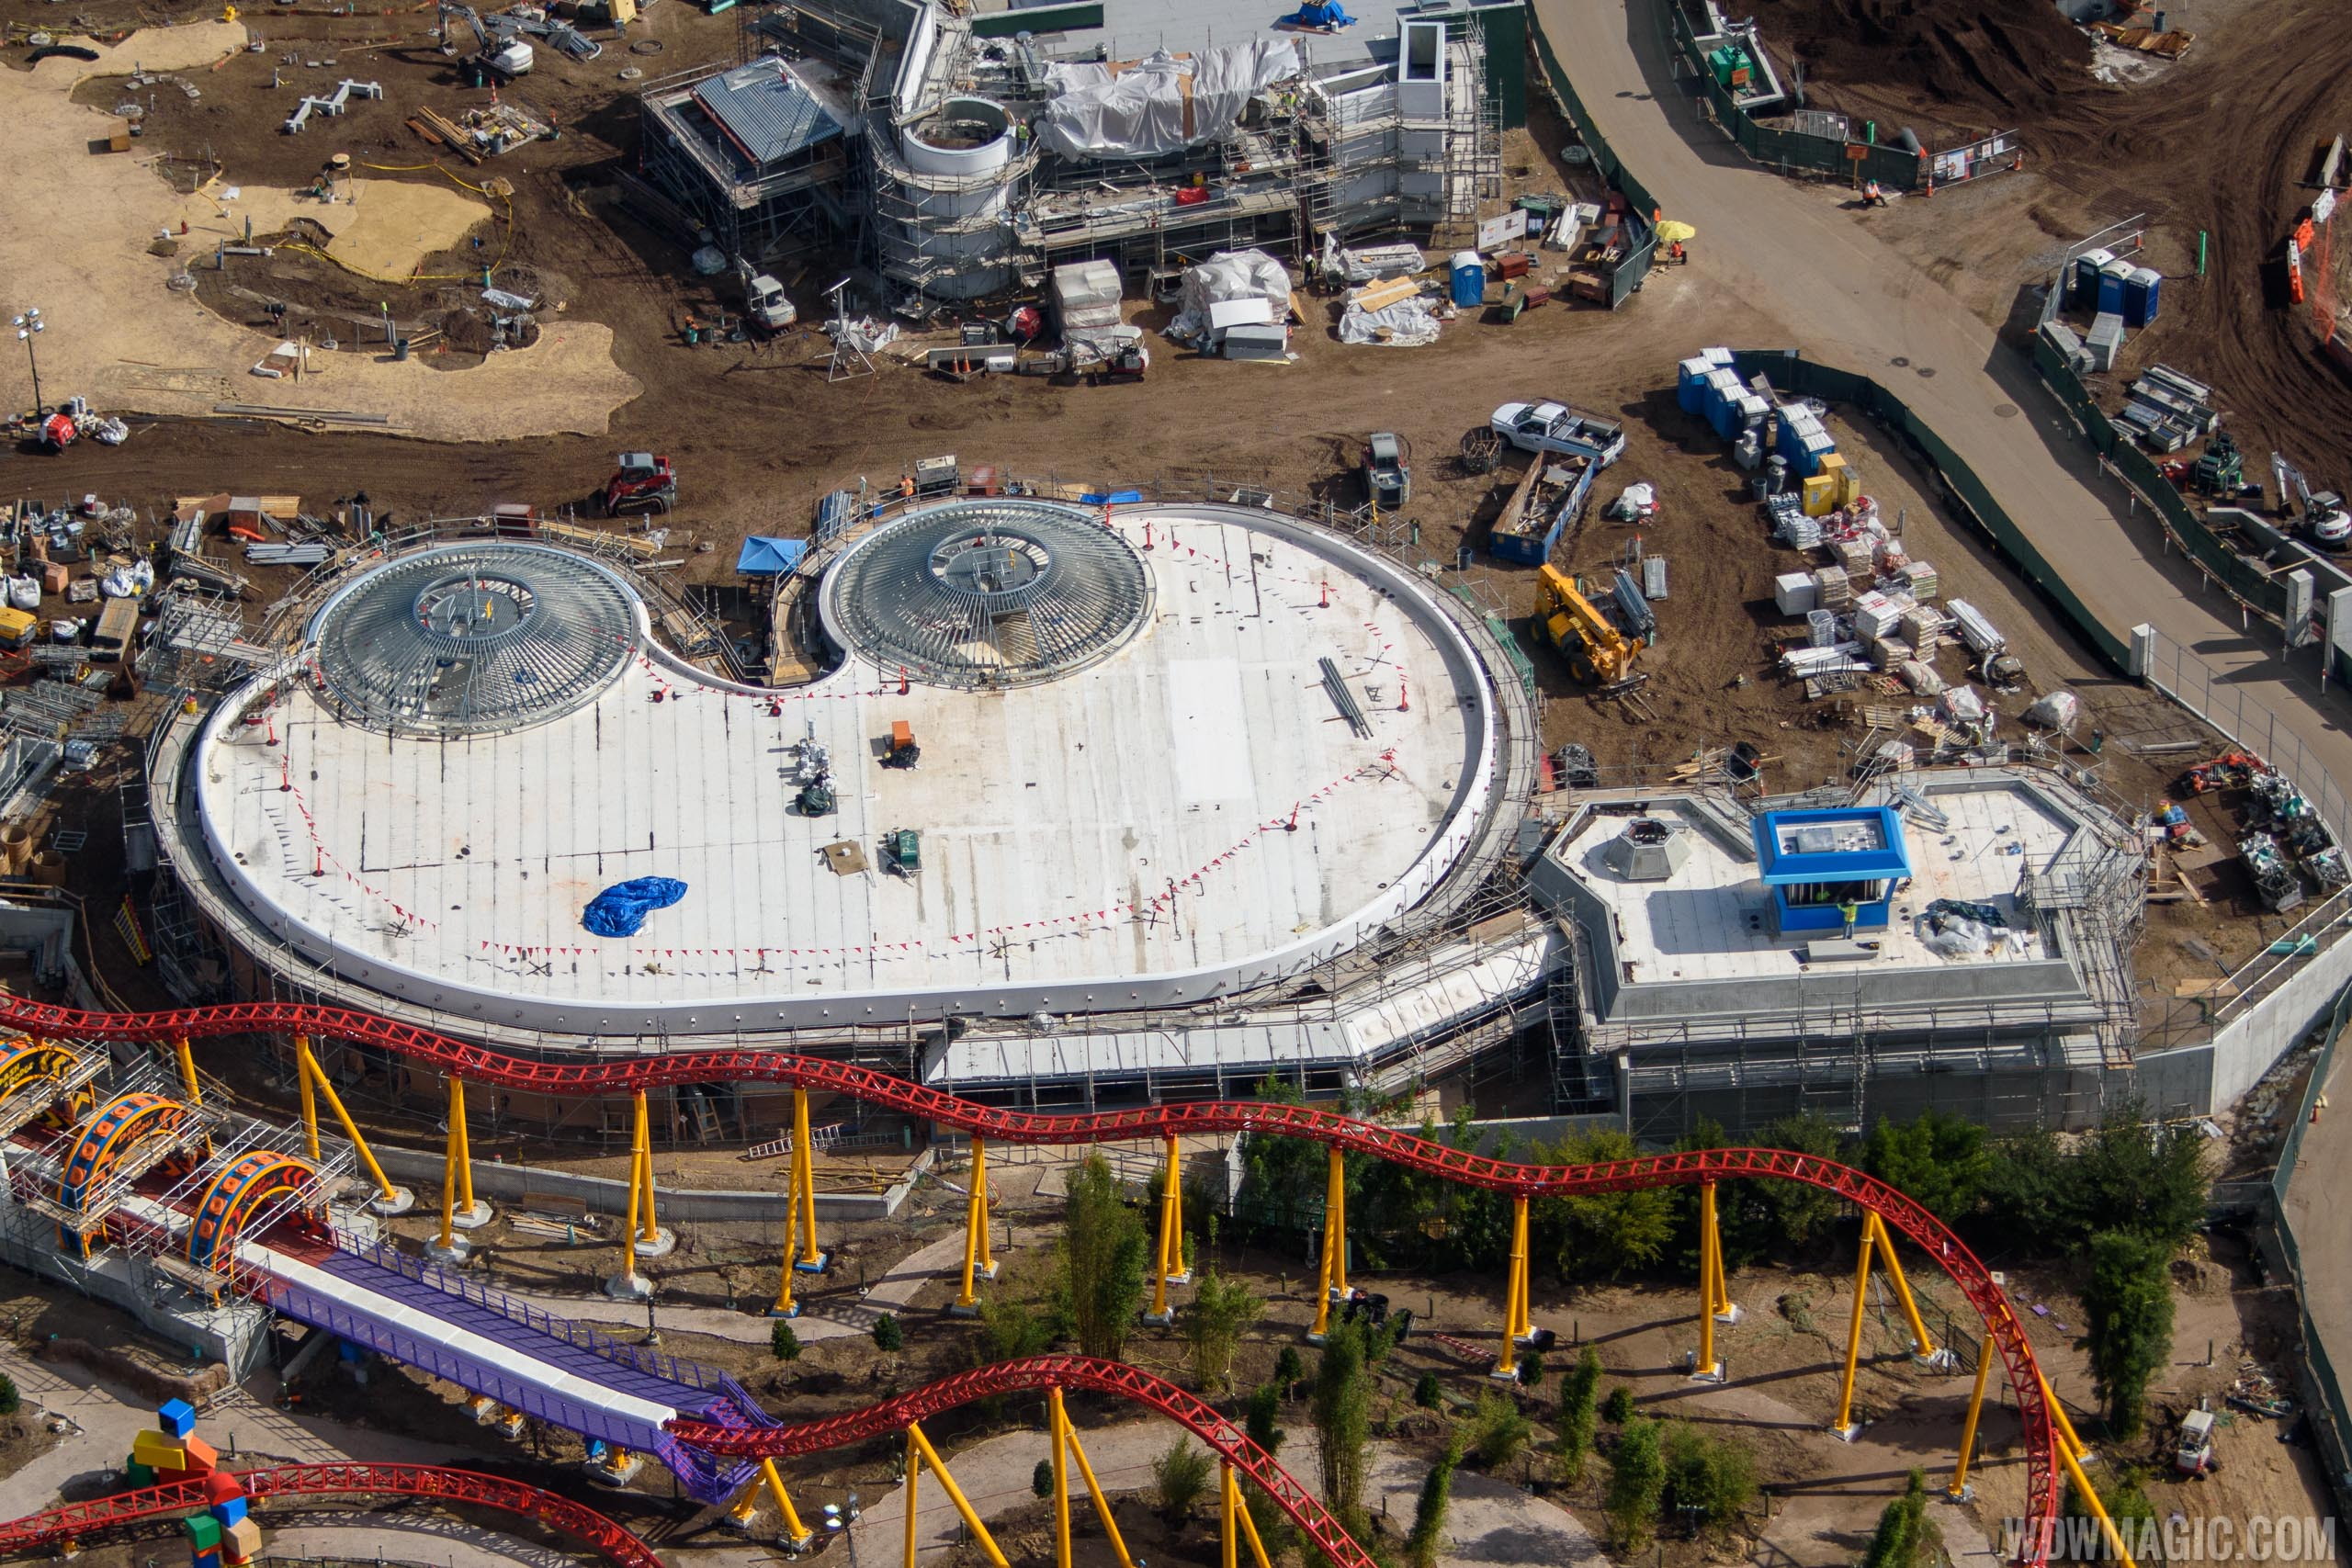 Alien Swirling Saucers under construction